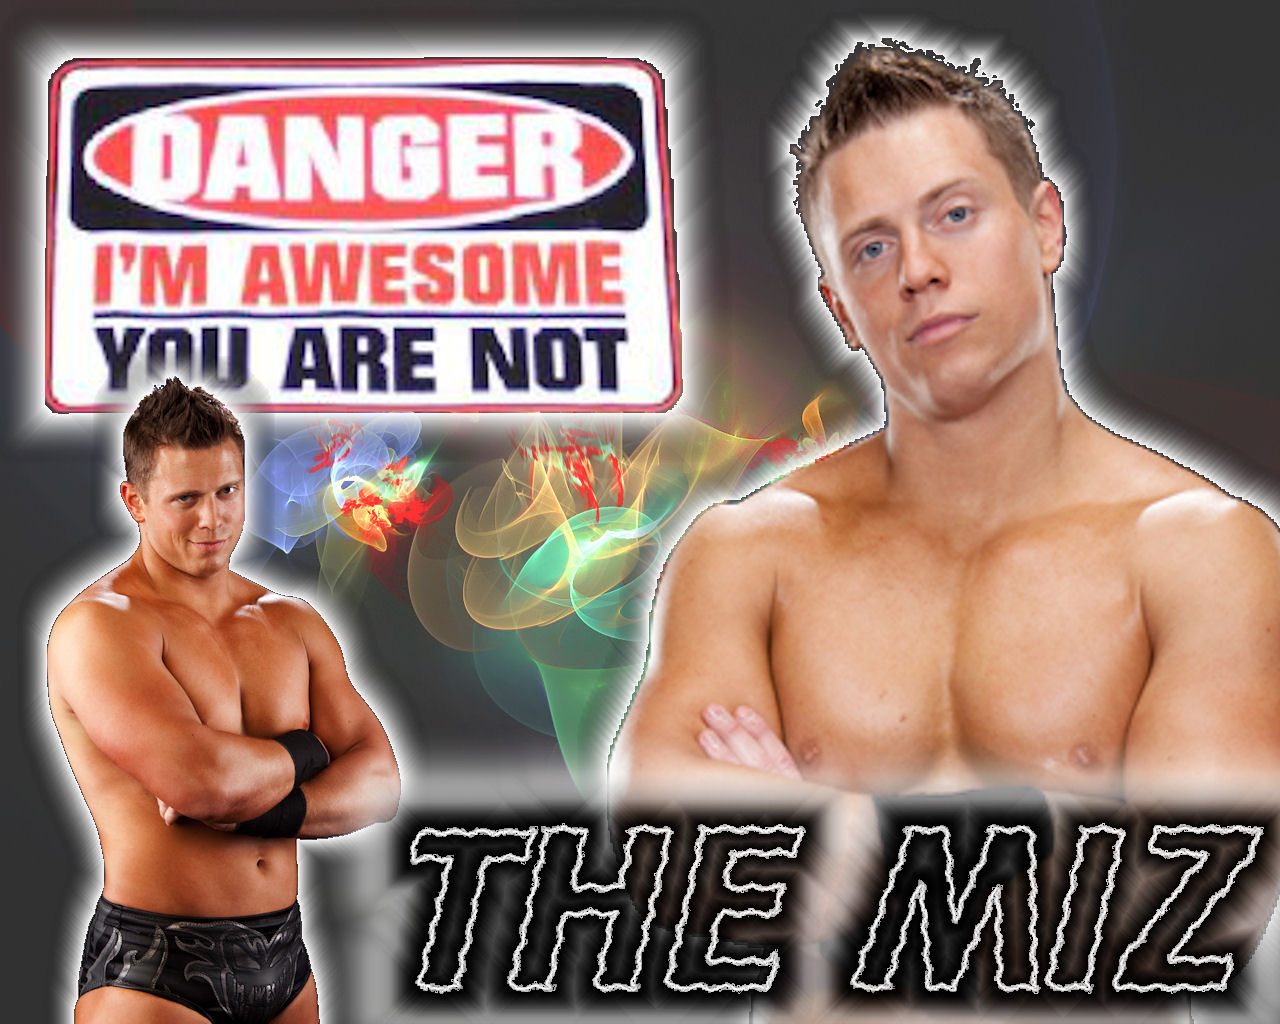 http://images5.fanpop.com/image/photos/31600000/The-Miz-wwe-31689326-1280-1024.jpg